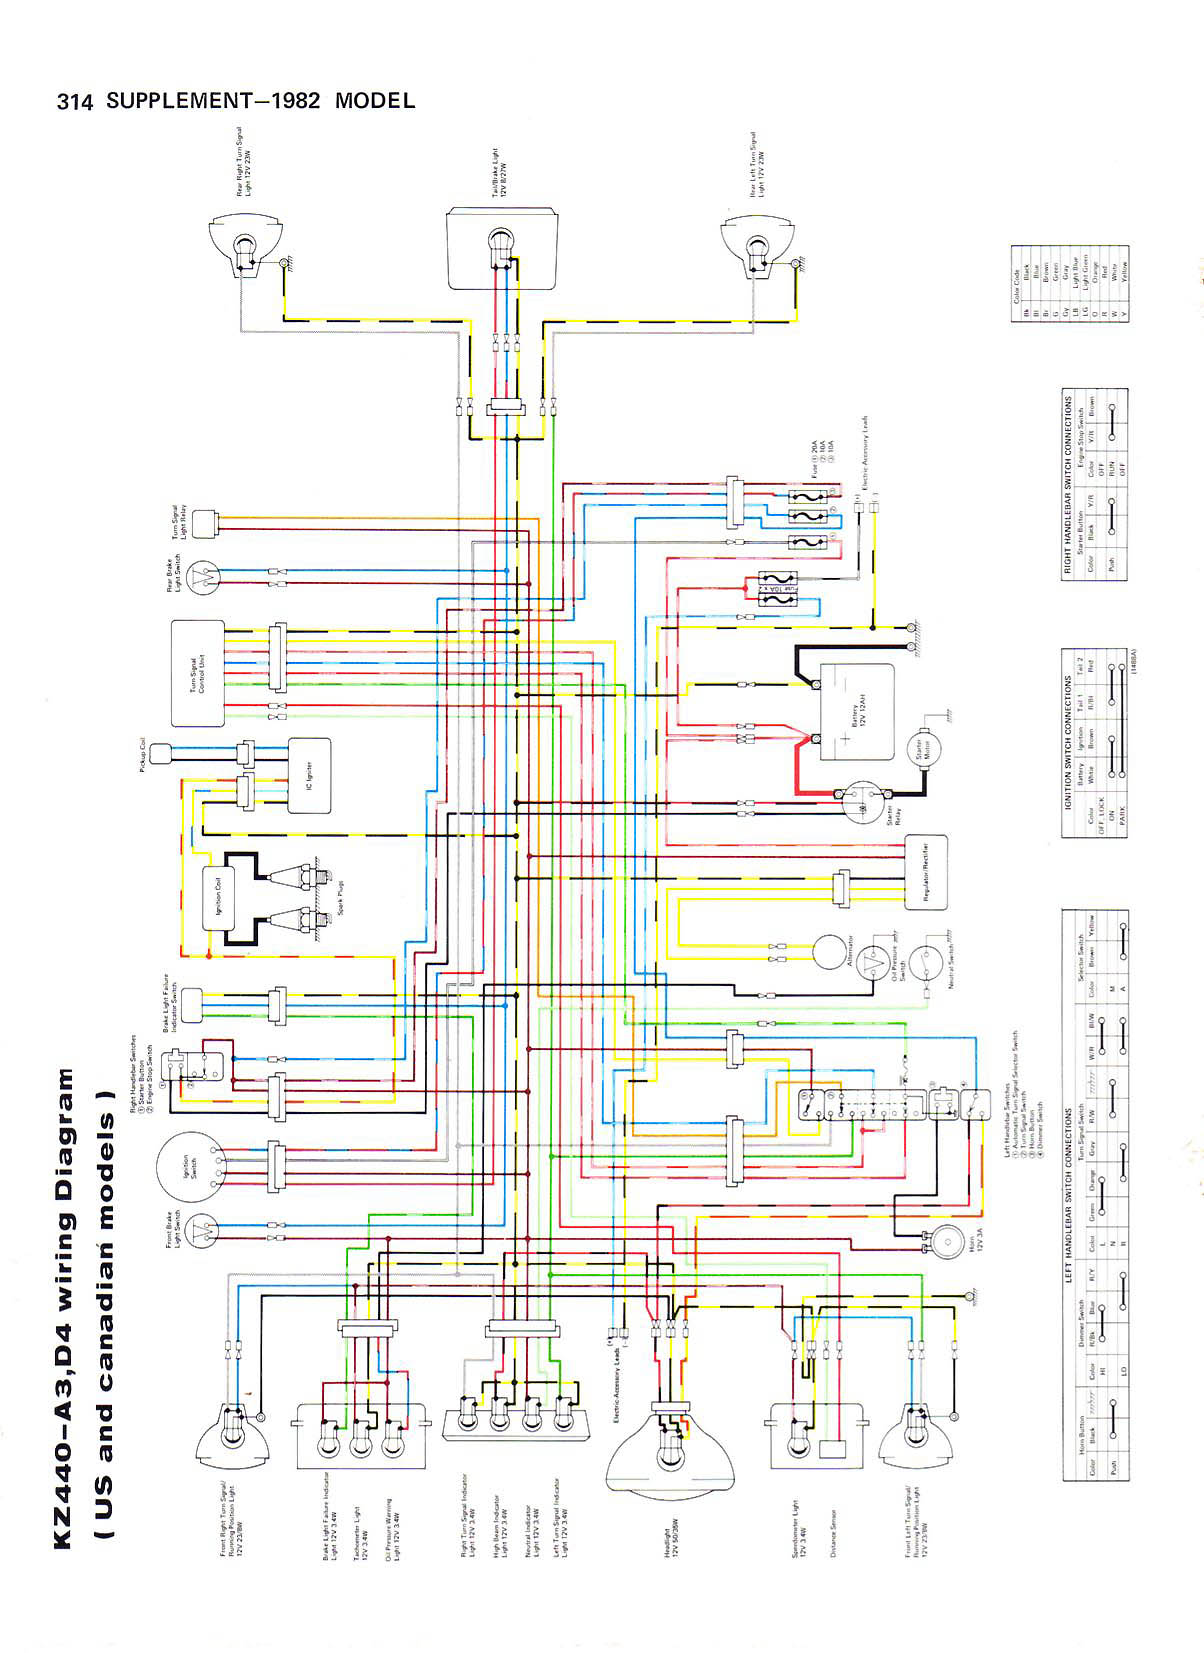 Kawasaki KZ 440 %2780 a %2782 Service Manual_Page_311 kz400 wiring diagram 1983 kawasaki motorcycle wiring diagrams  at bakdesigns.co